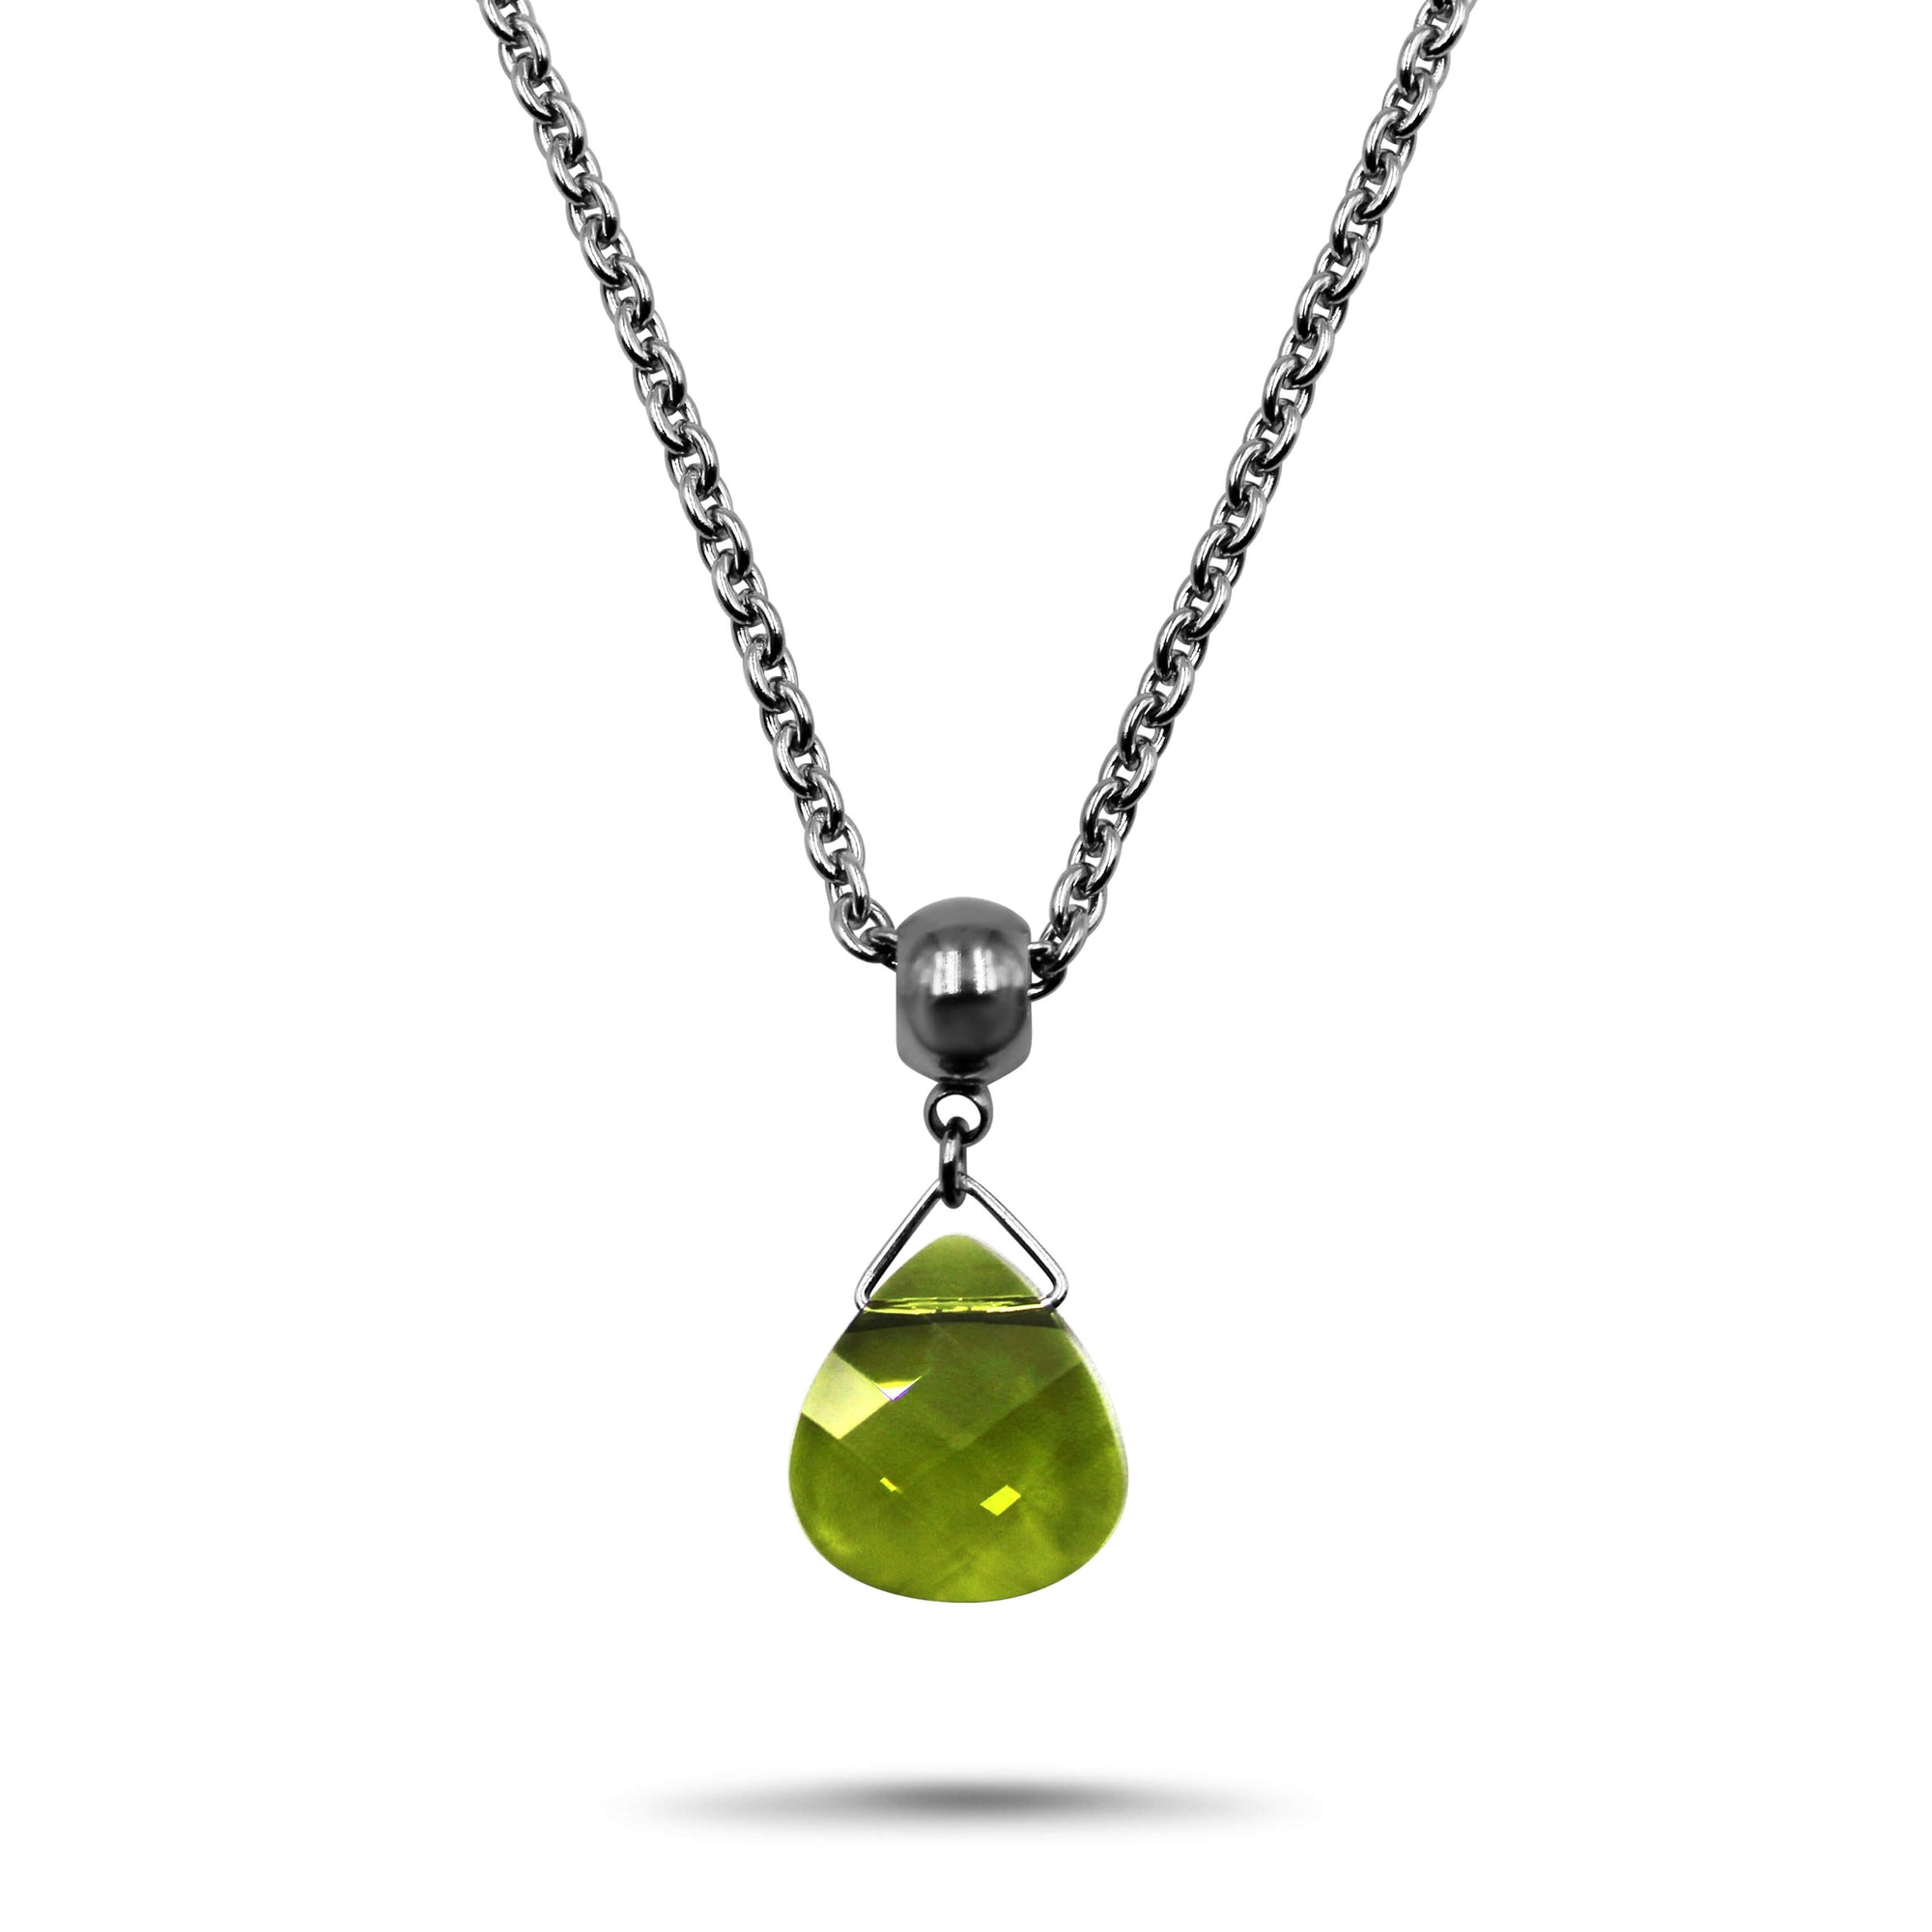 Olivine Swarovski Crystal Necklace - Creative Jewelry by Marcia - Asymmetrical Jewelry - Timeless Jewelry